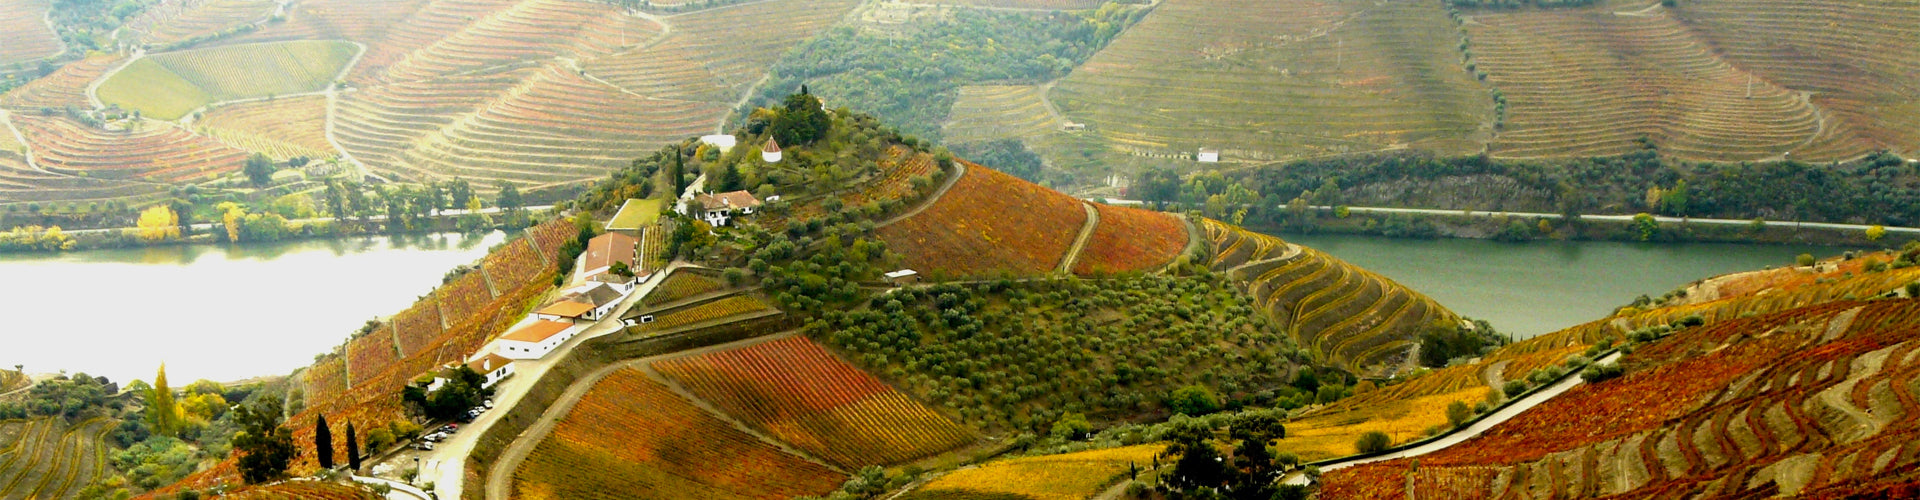 Quinta do Crasto Winery & Vineyards Douro Valley